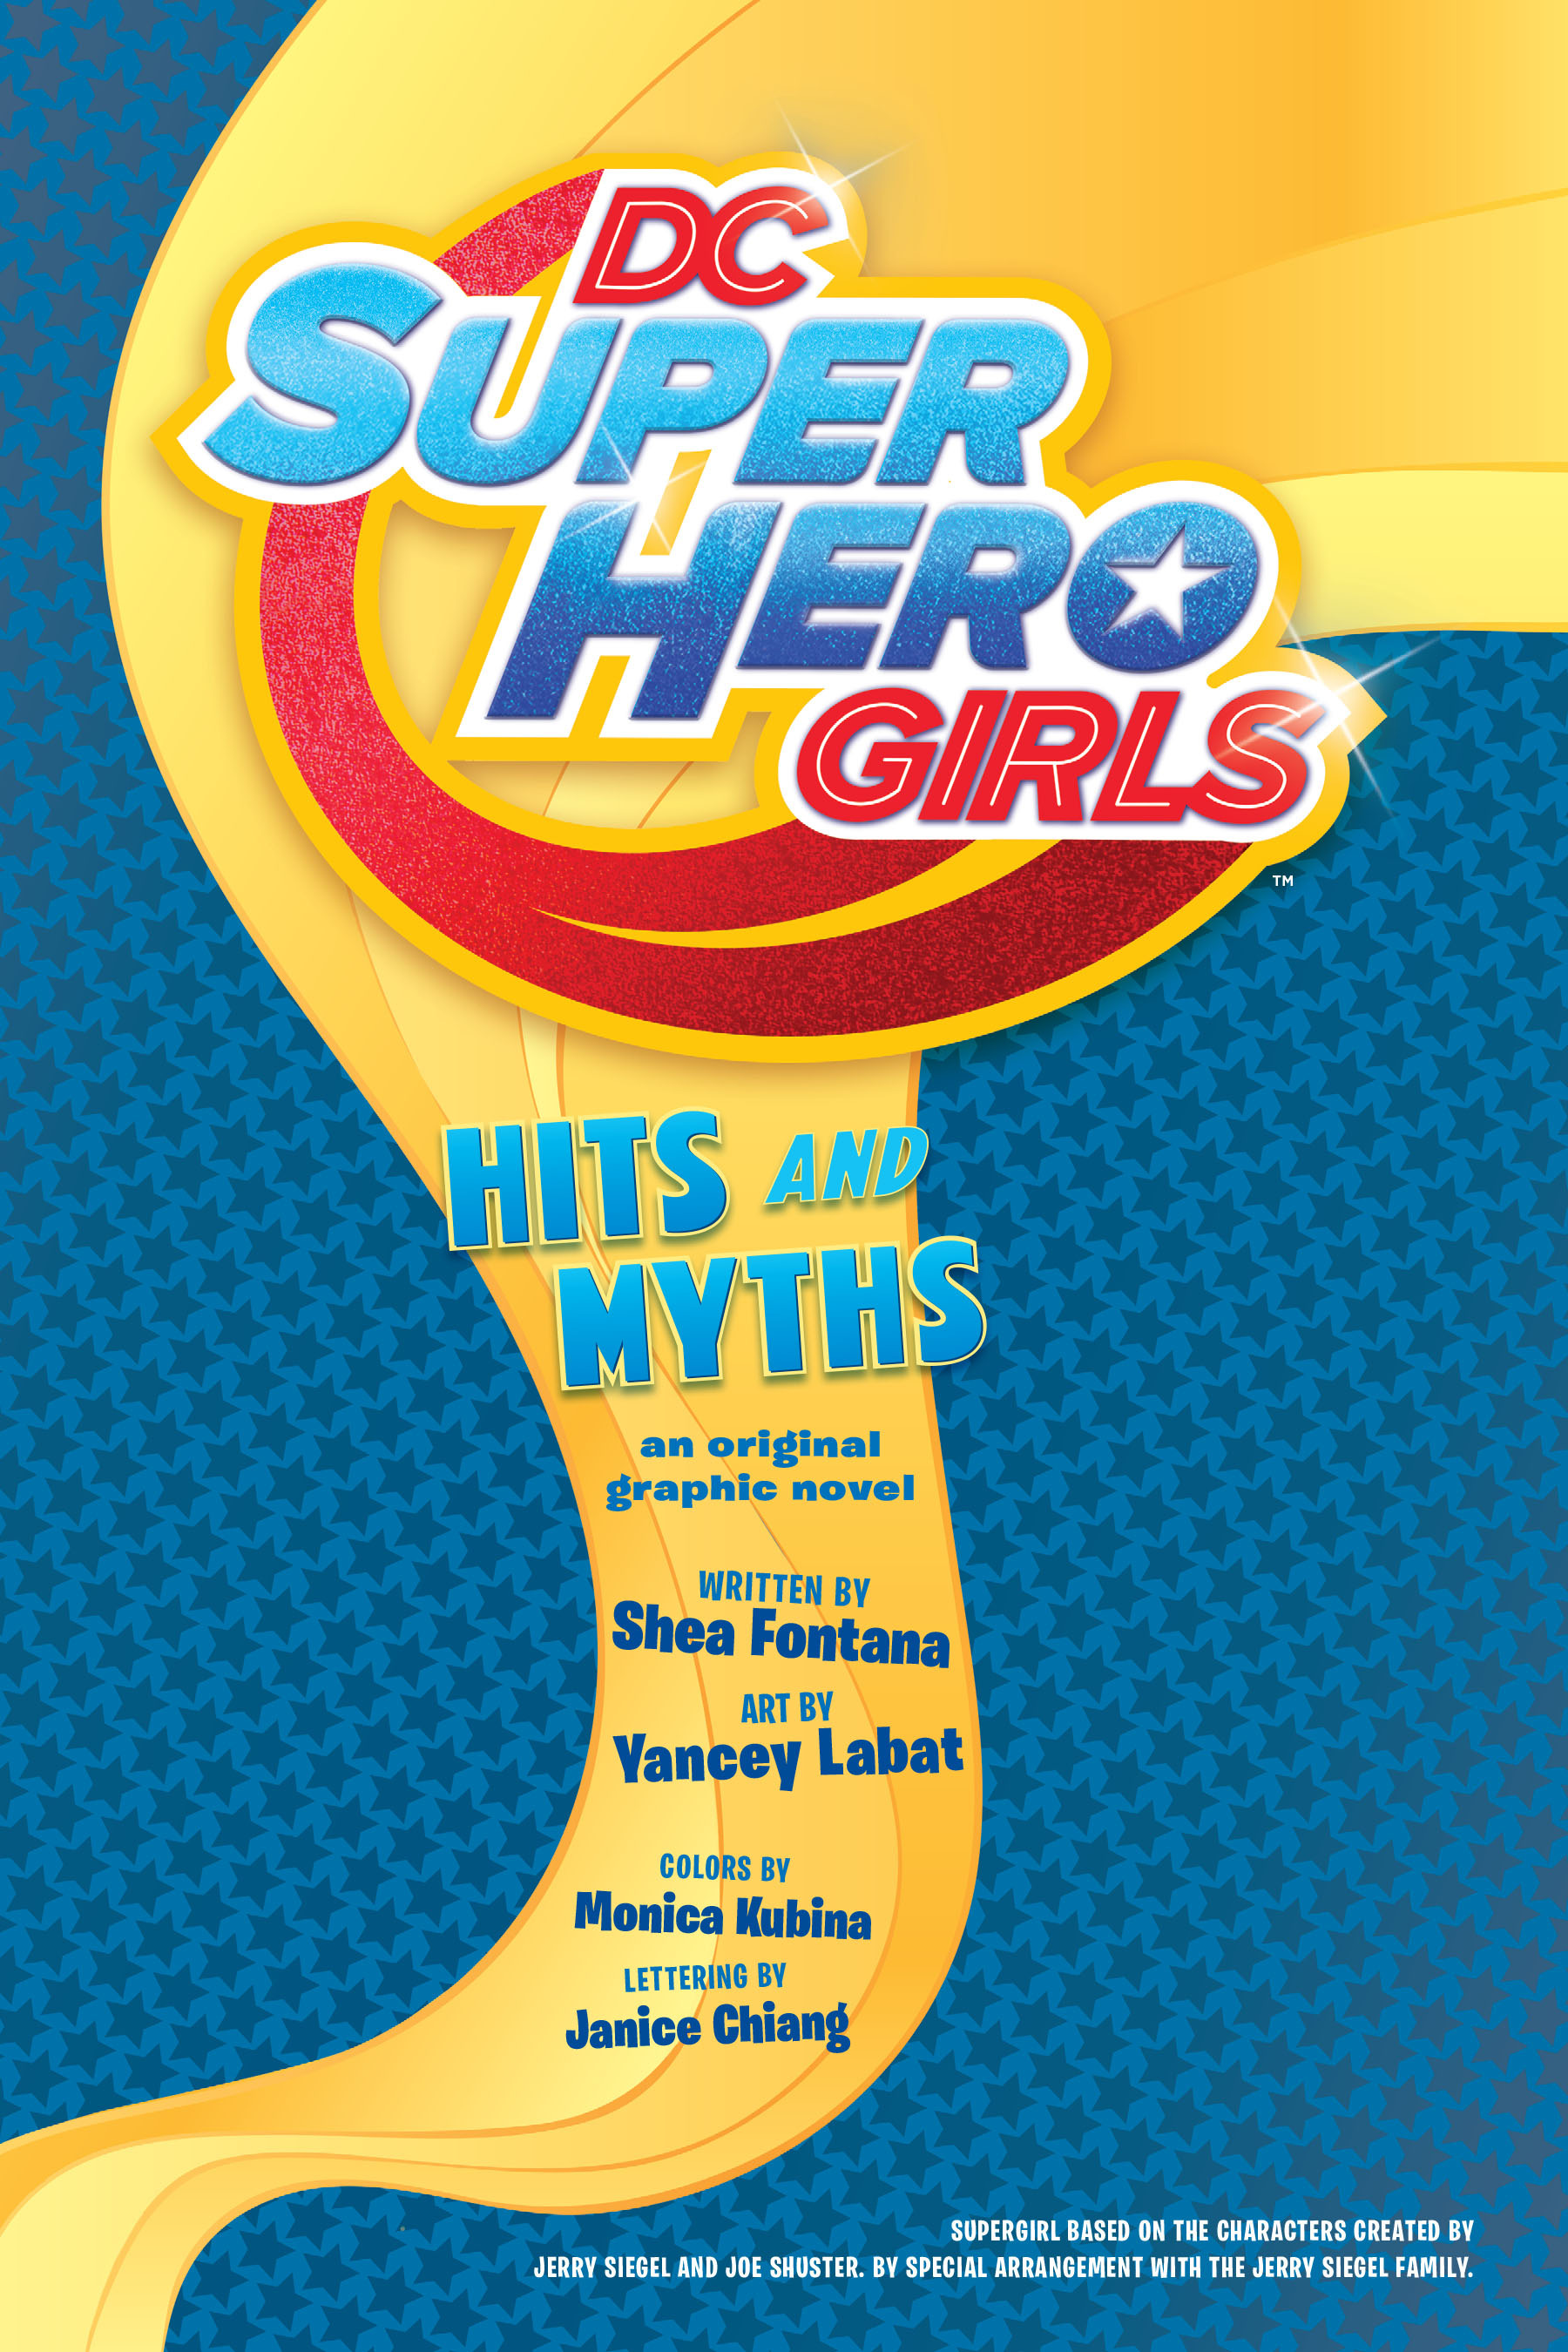 Read online DC Super Hero Girls: Hits and Myths comic -  Issue # Full - 2